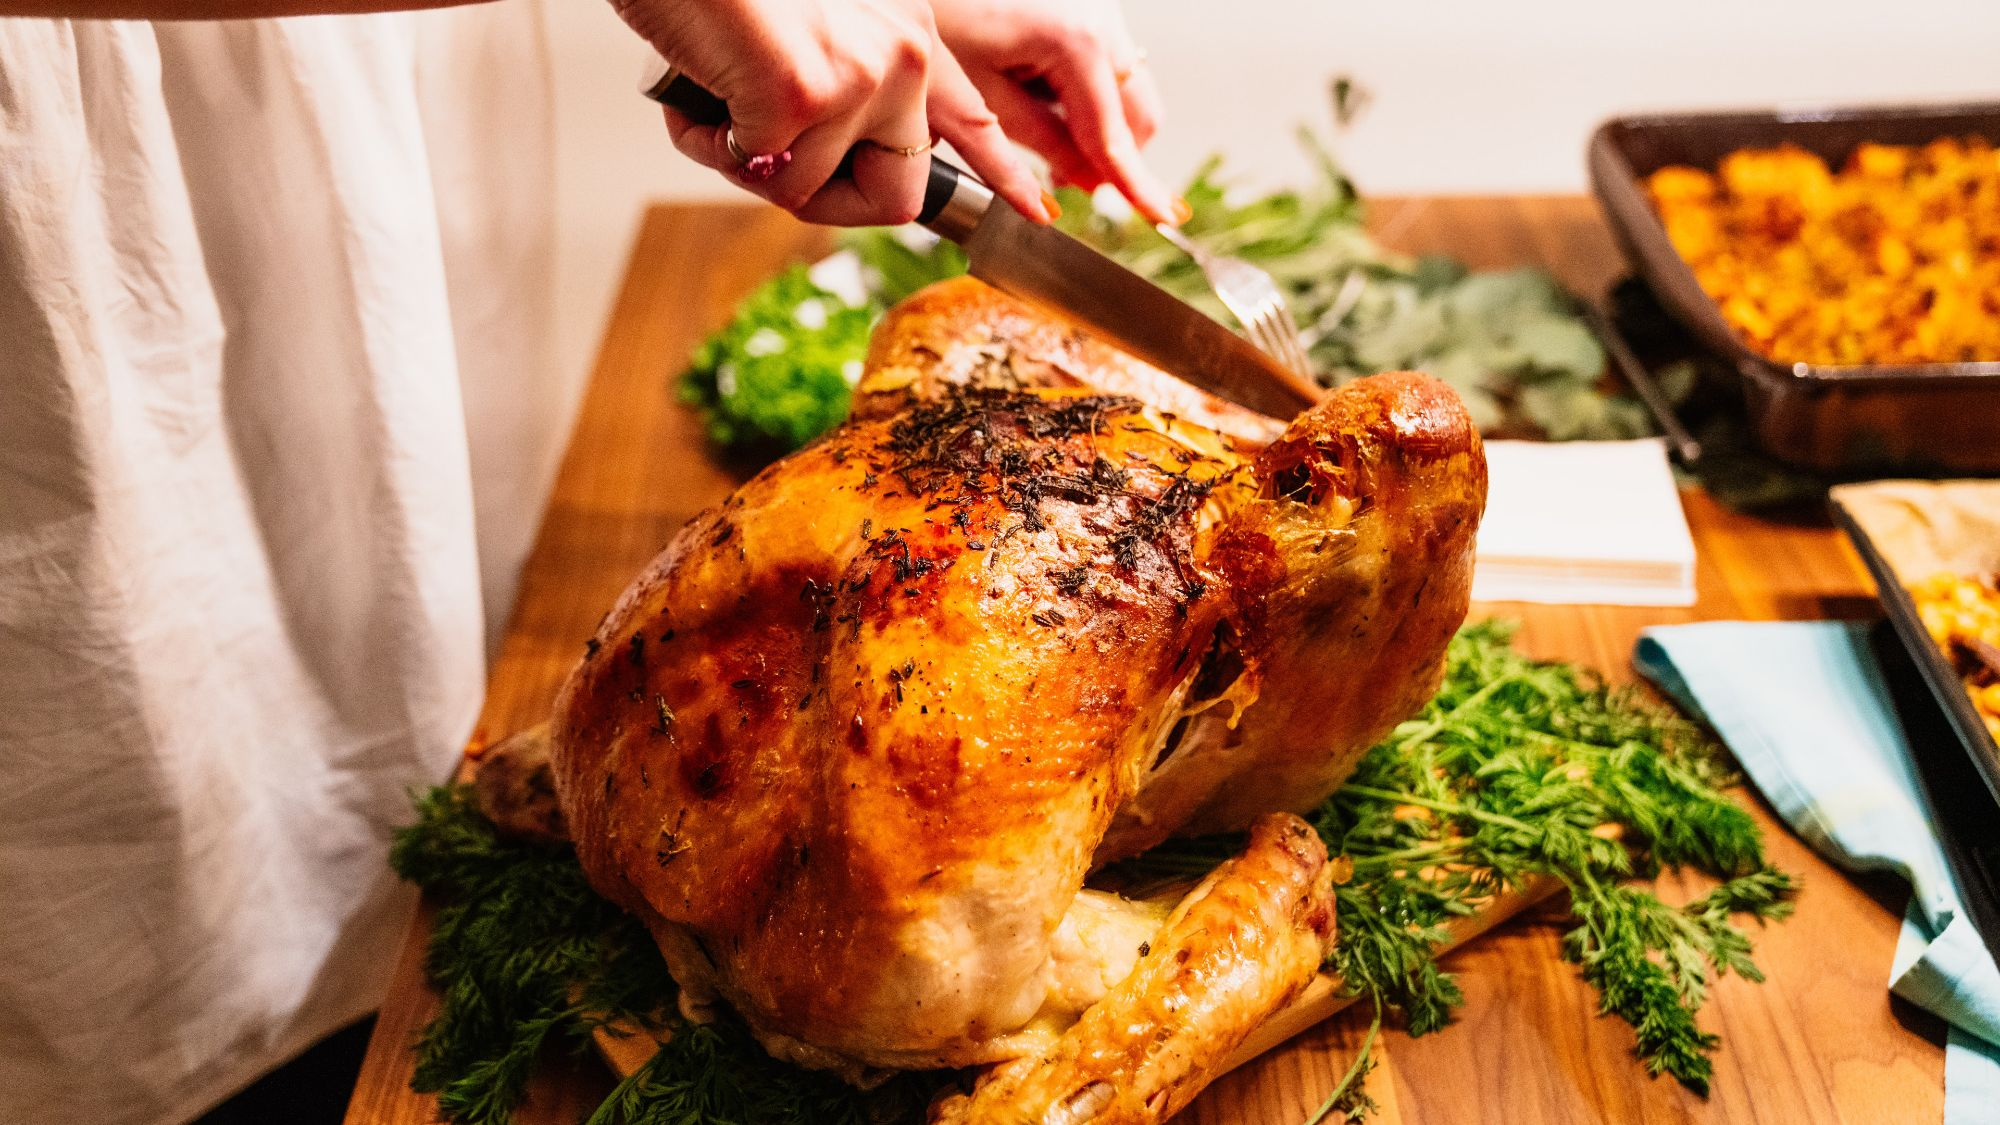 Expert Tips for Carving a Turkey